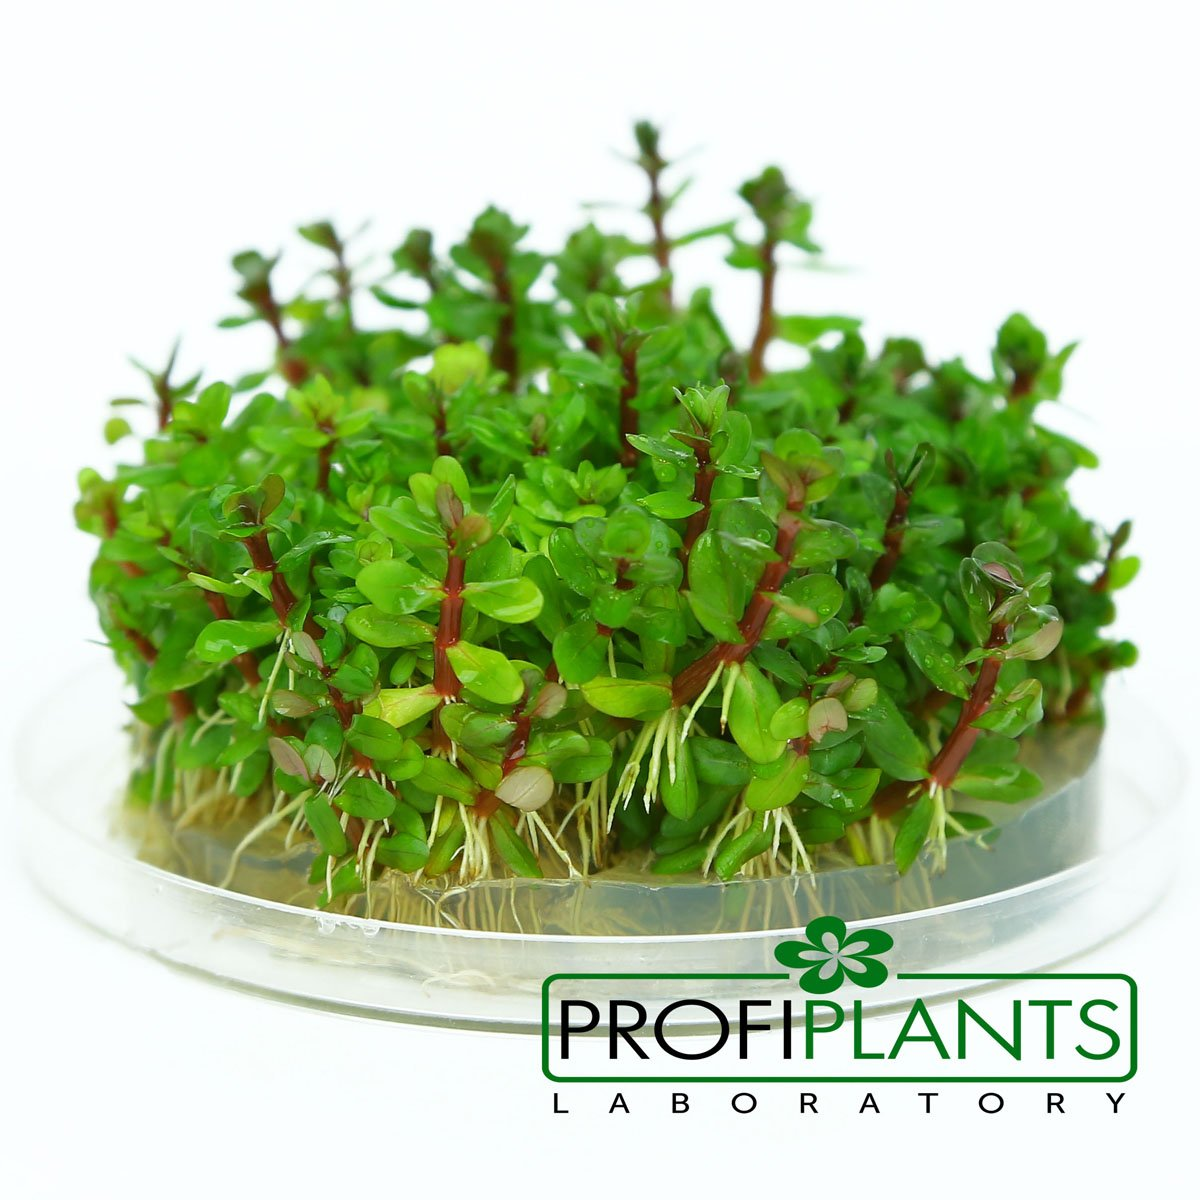 Co je to mikropropagace rostlin?